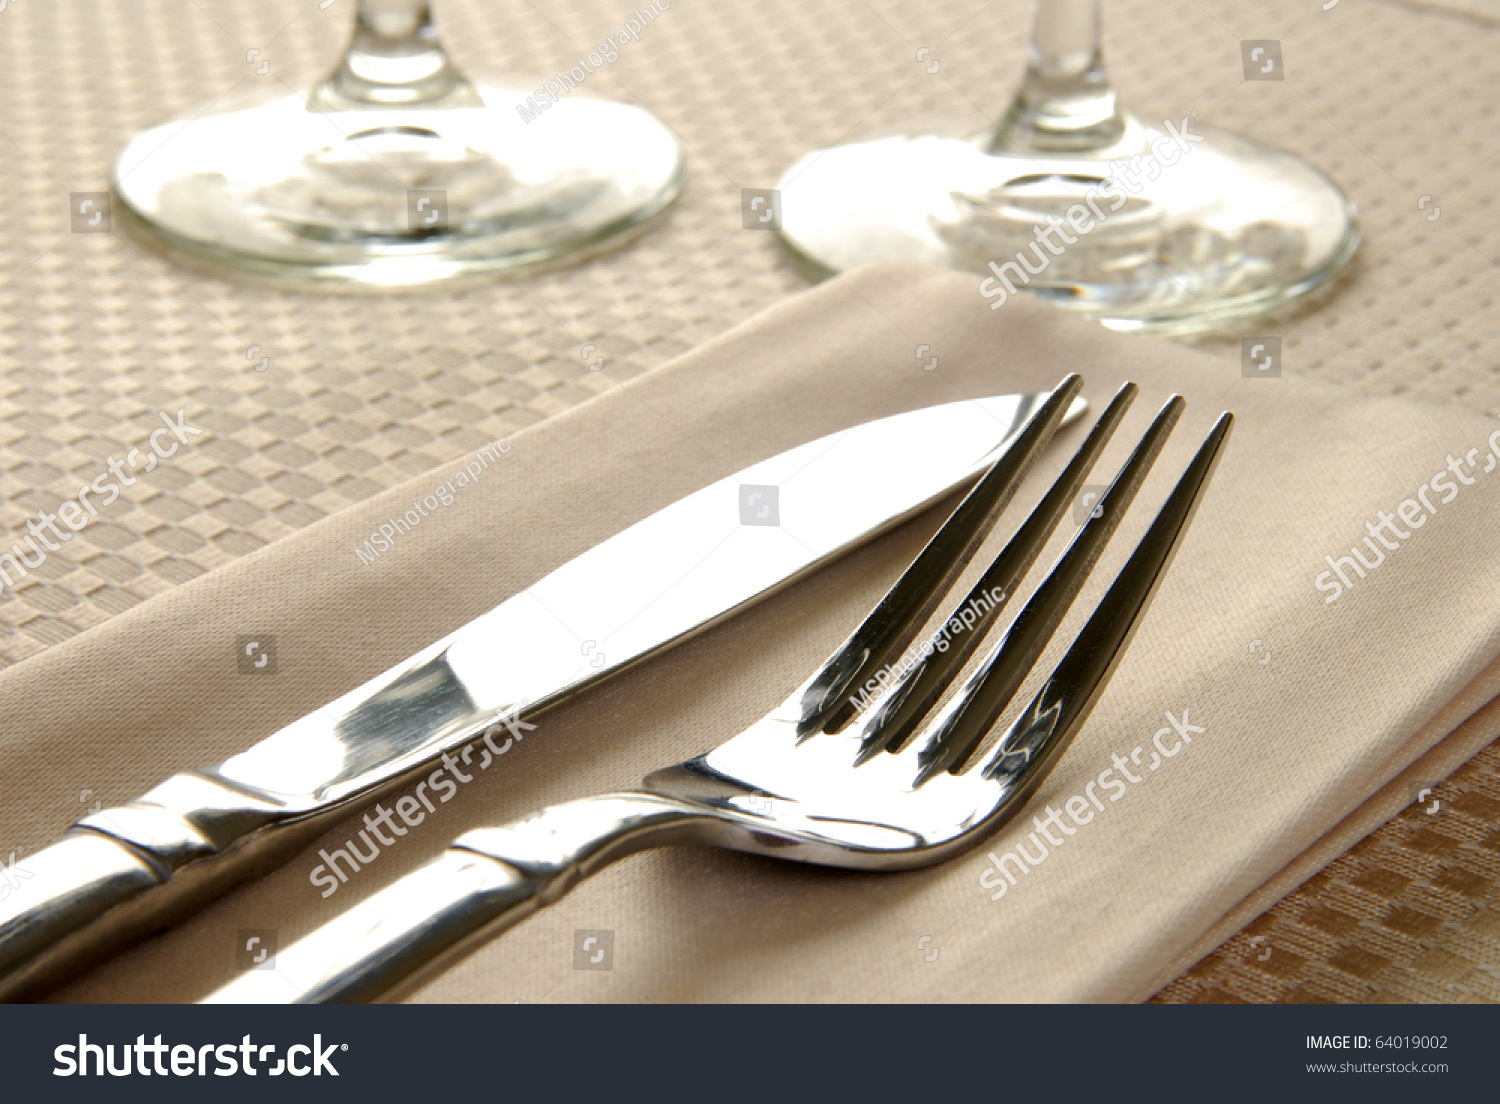 Elegant dinner table setting - Close Up Photo Of An Elegant Dinner Table Setting